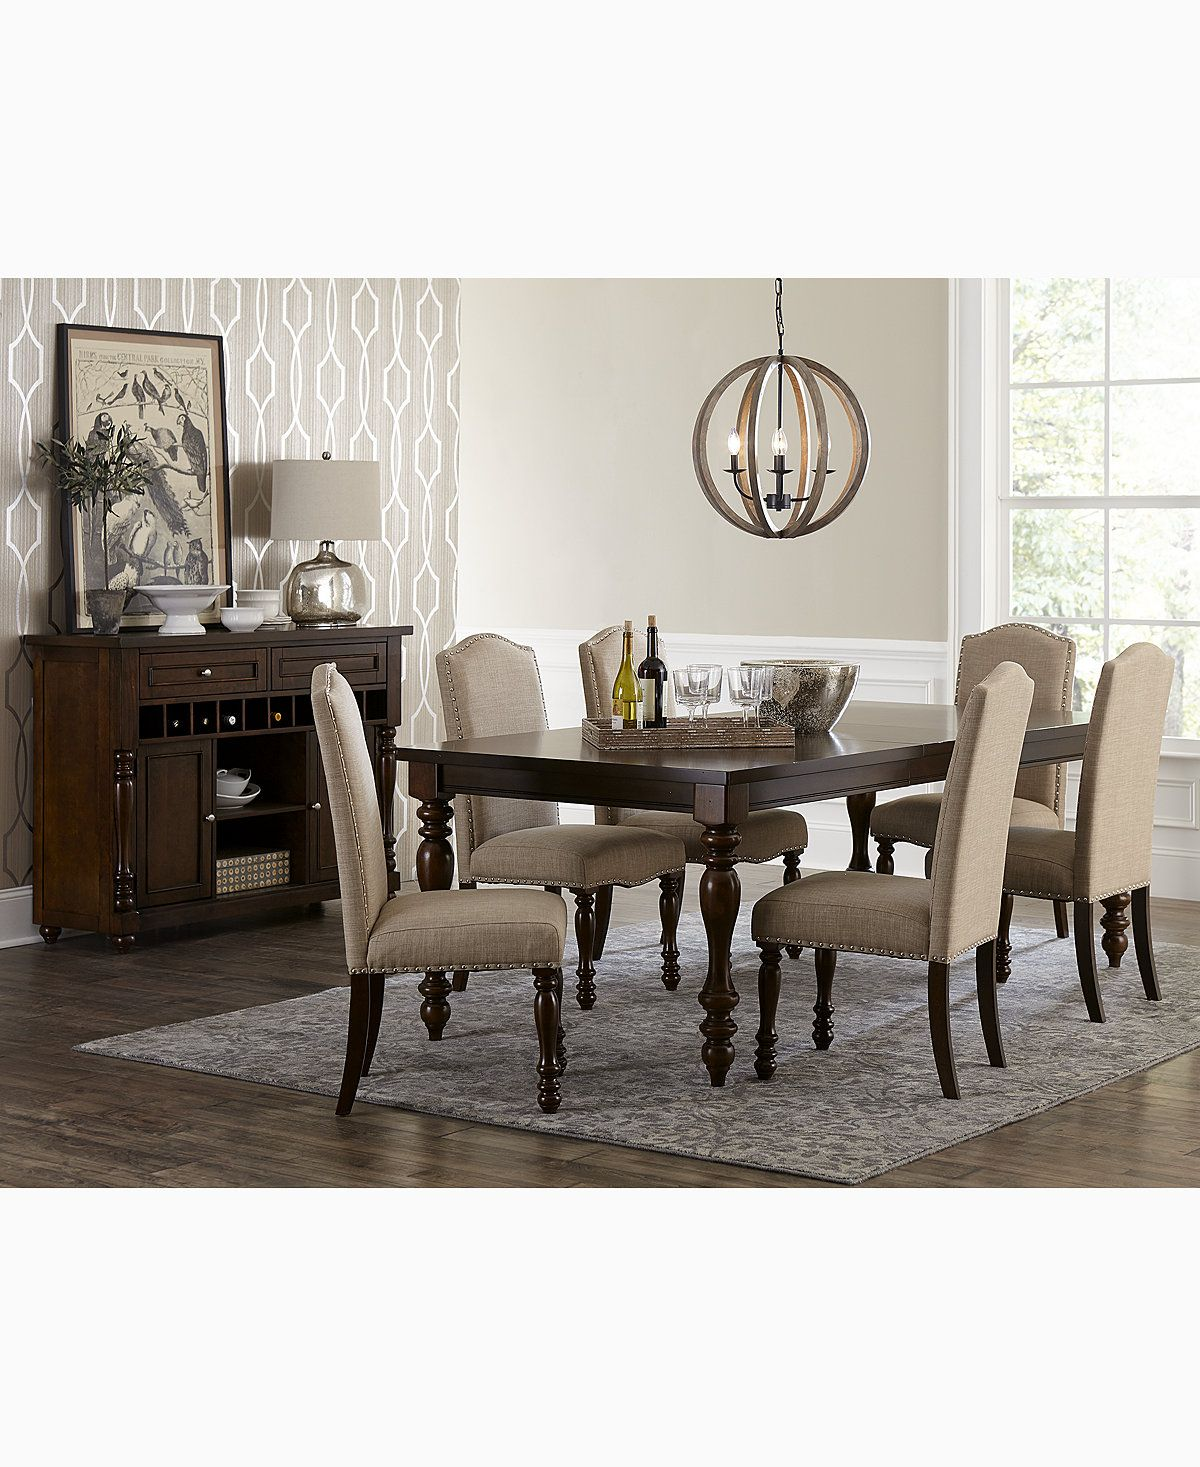 Kelso pc dining set dining table u side chairs dining sets